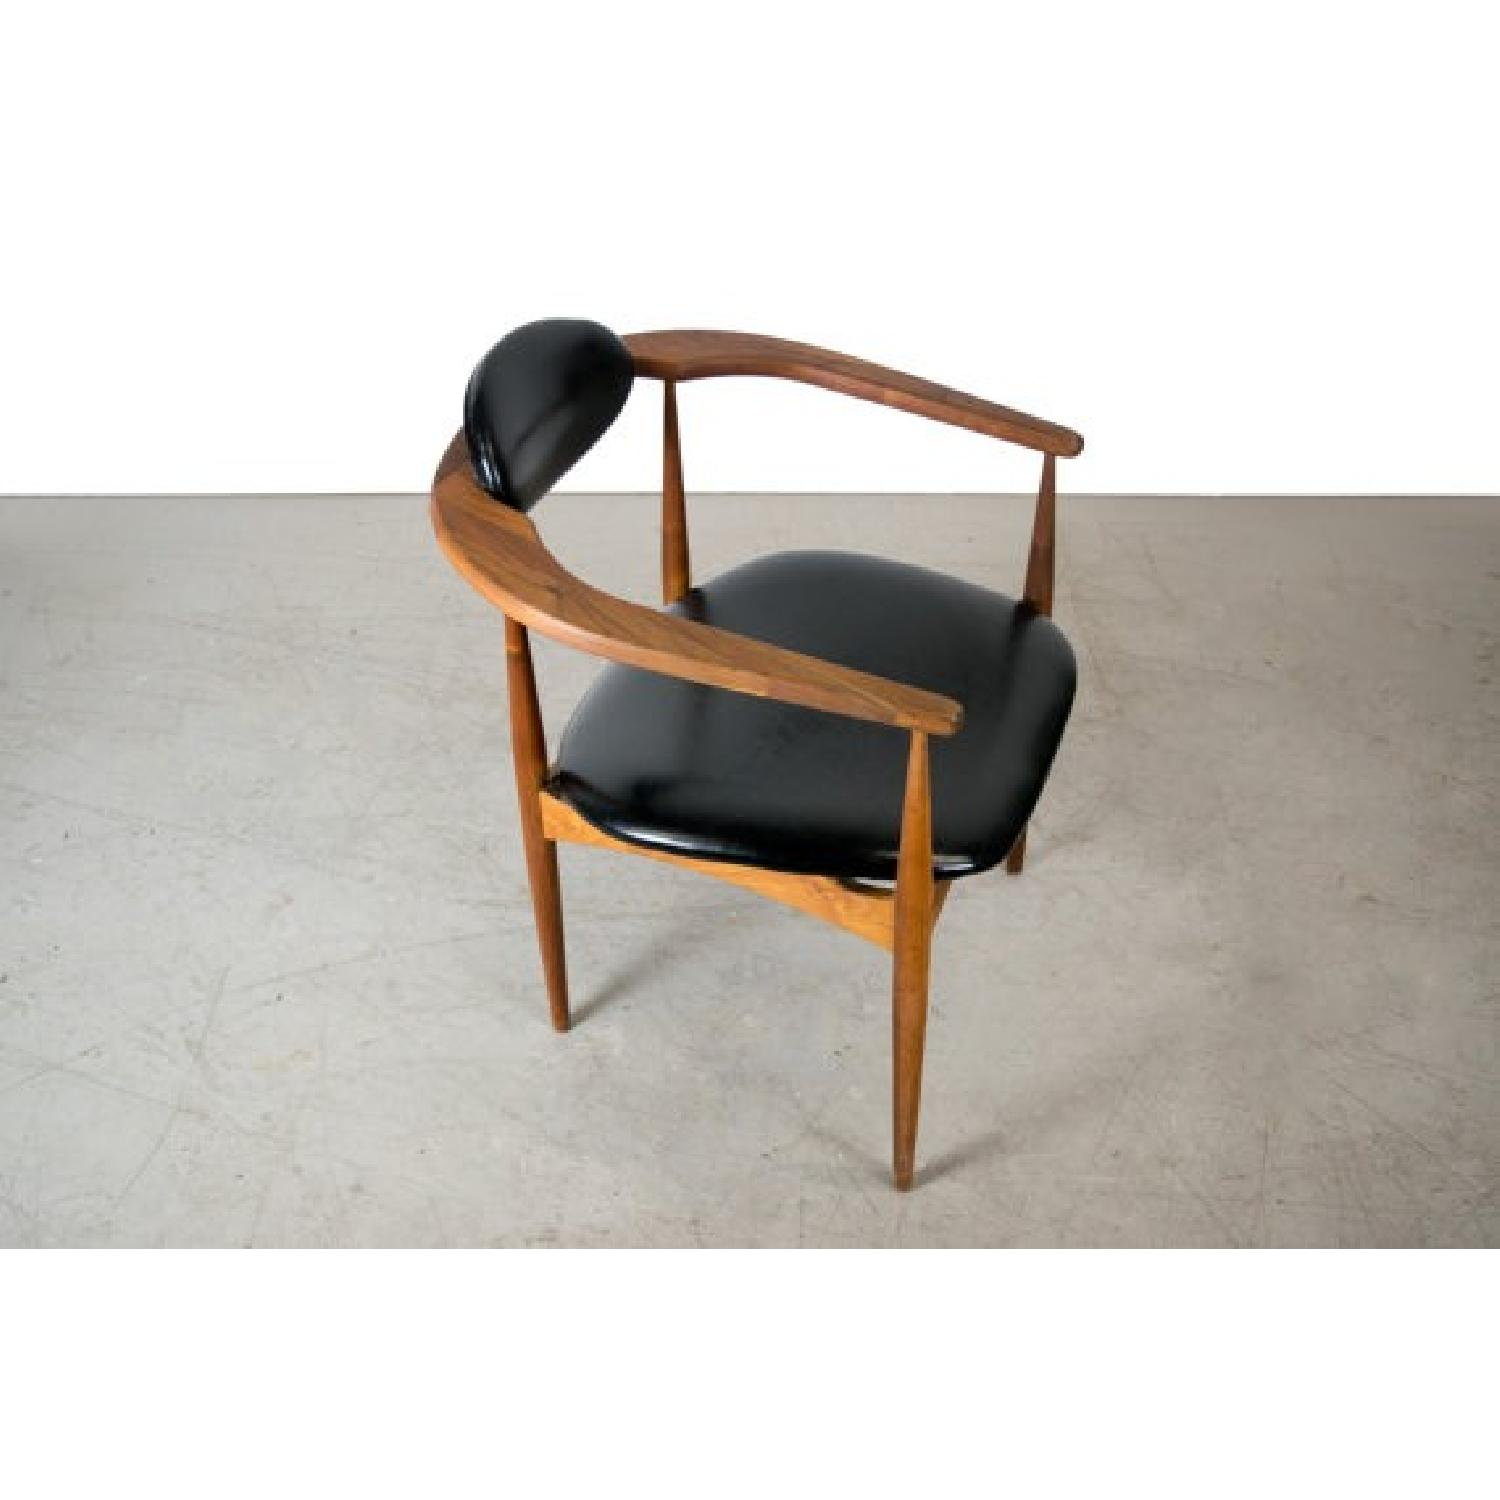 Vintage Adrian Pearsall Chairs - image-3